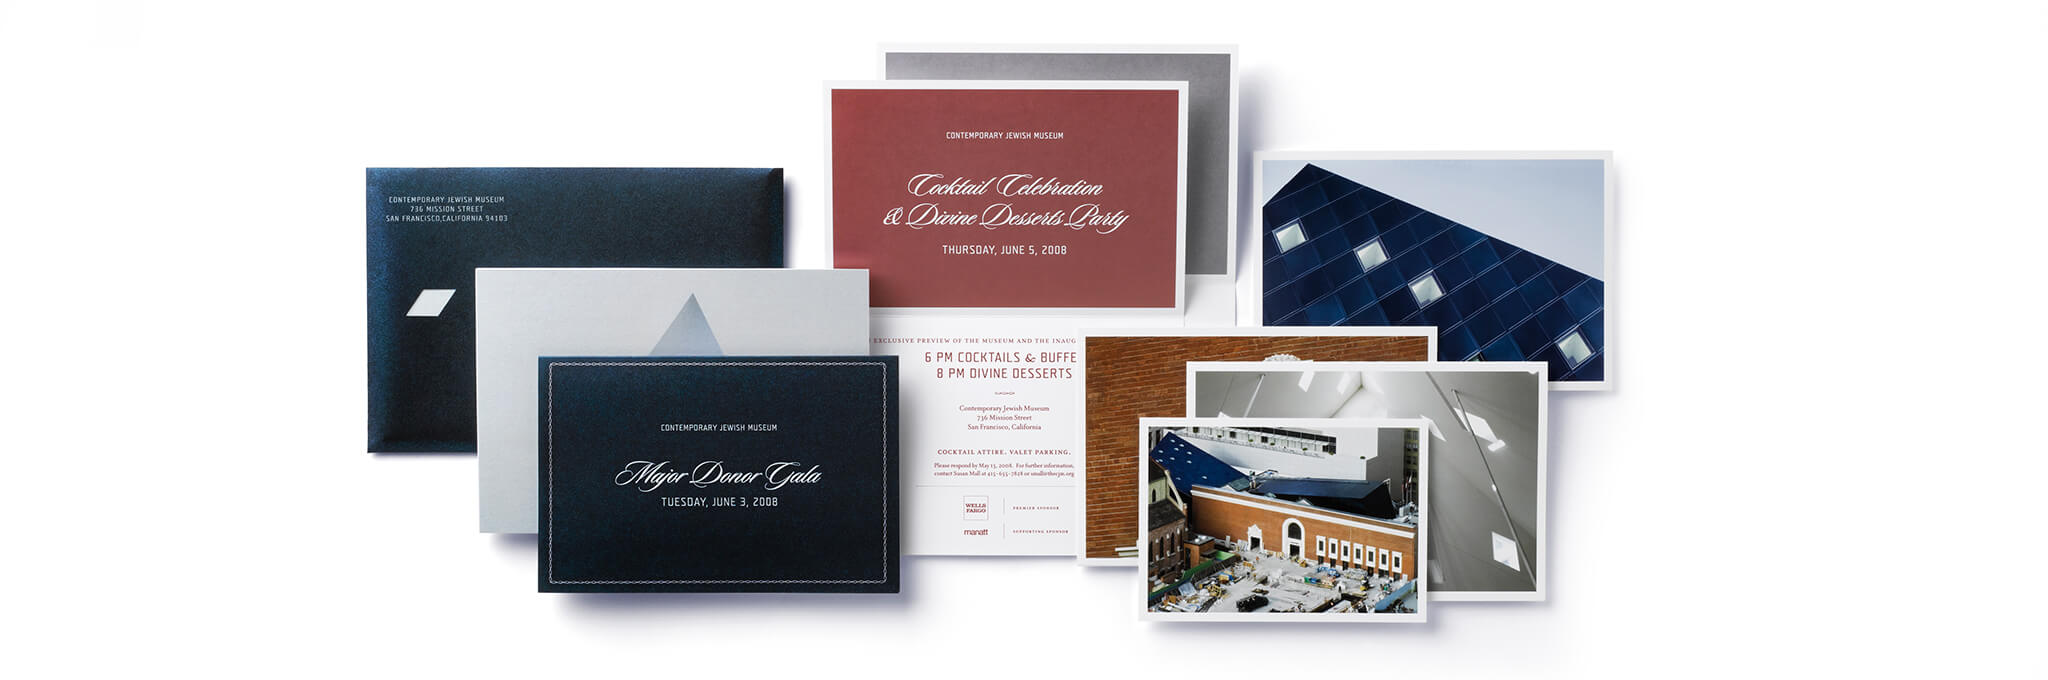 Invitation suite with cards, photos, and navy envelope